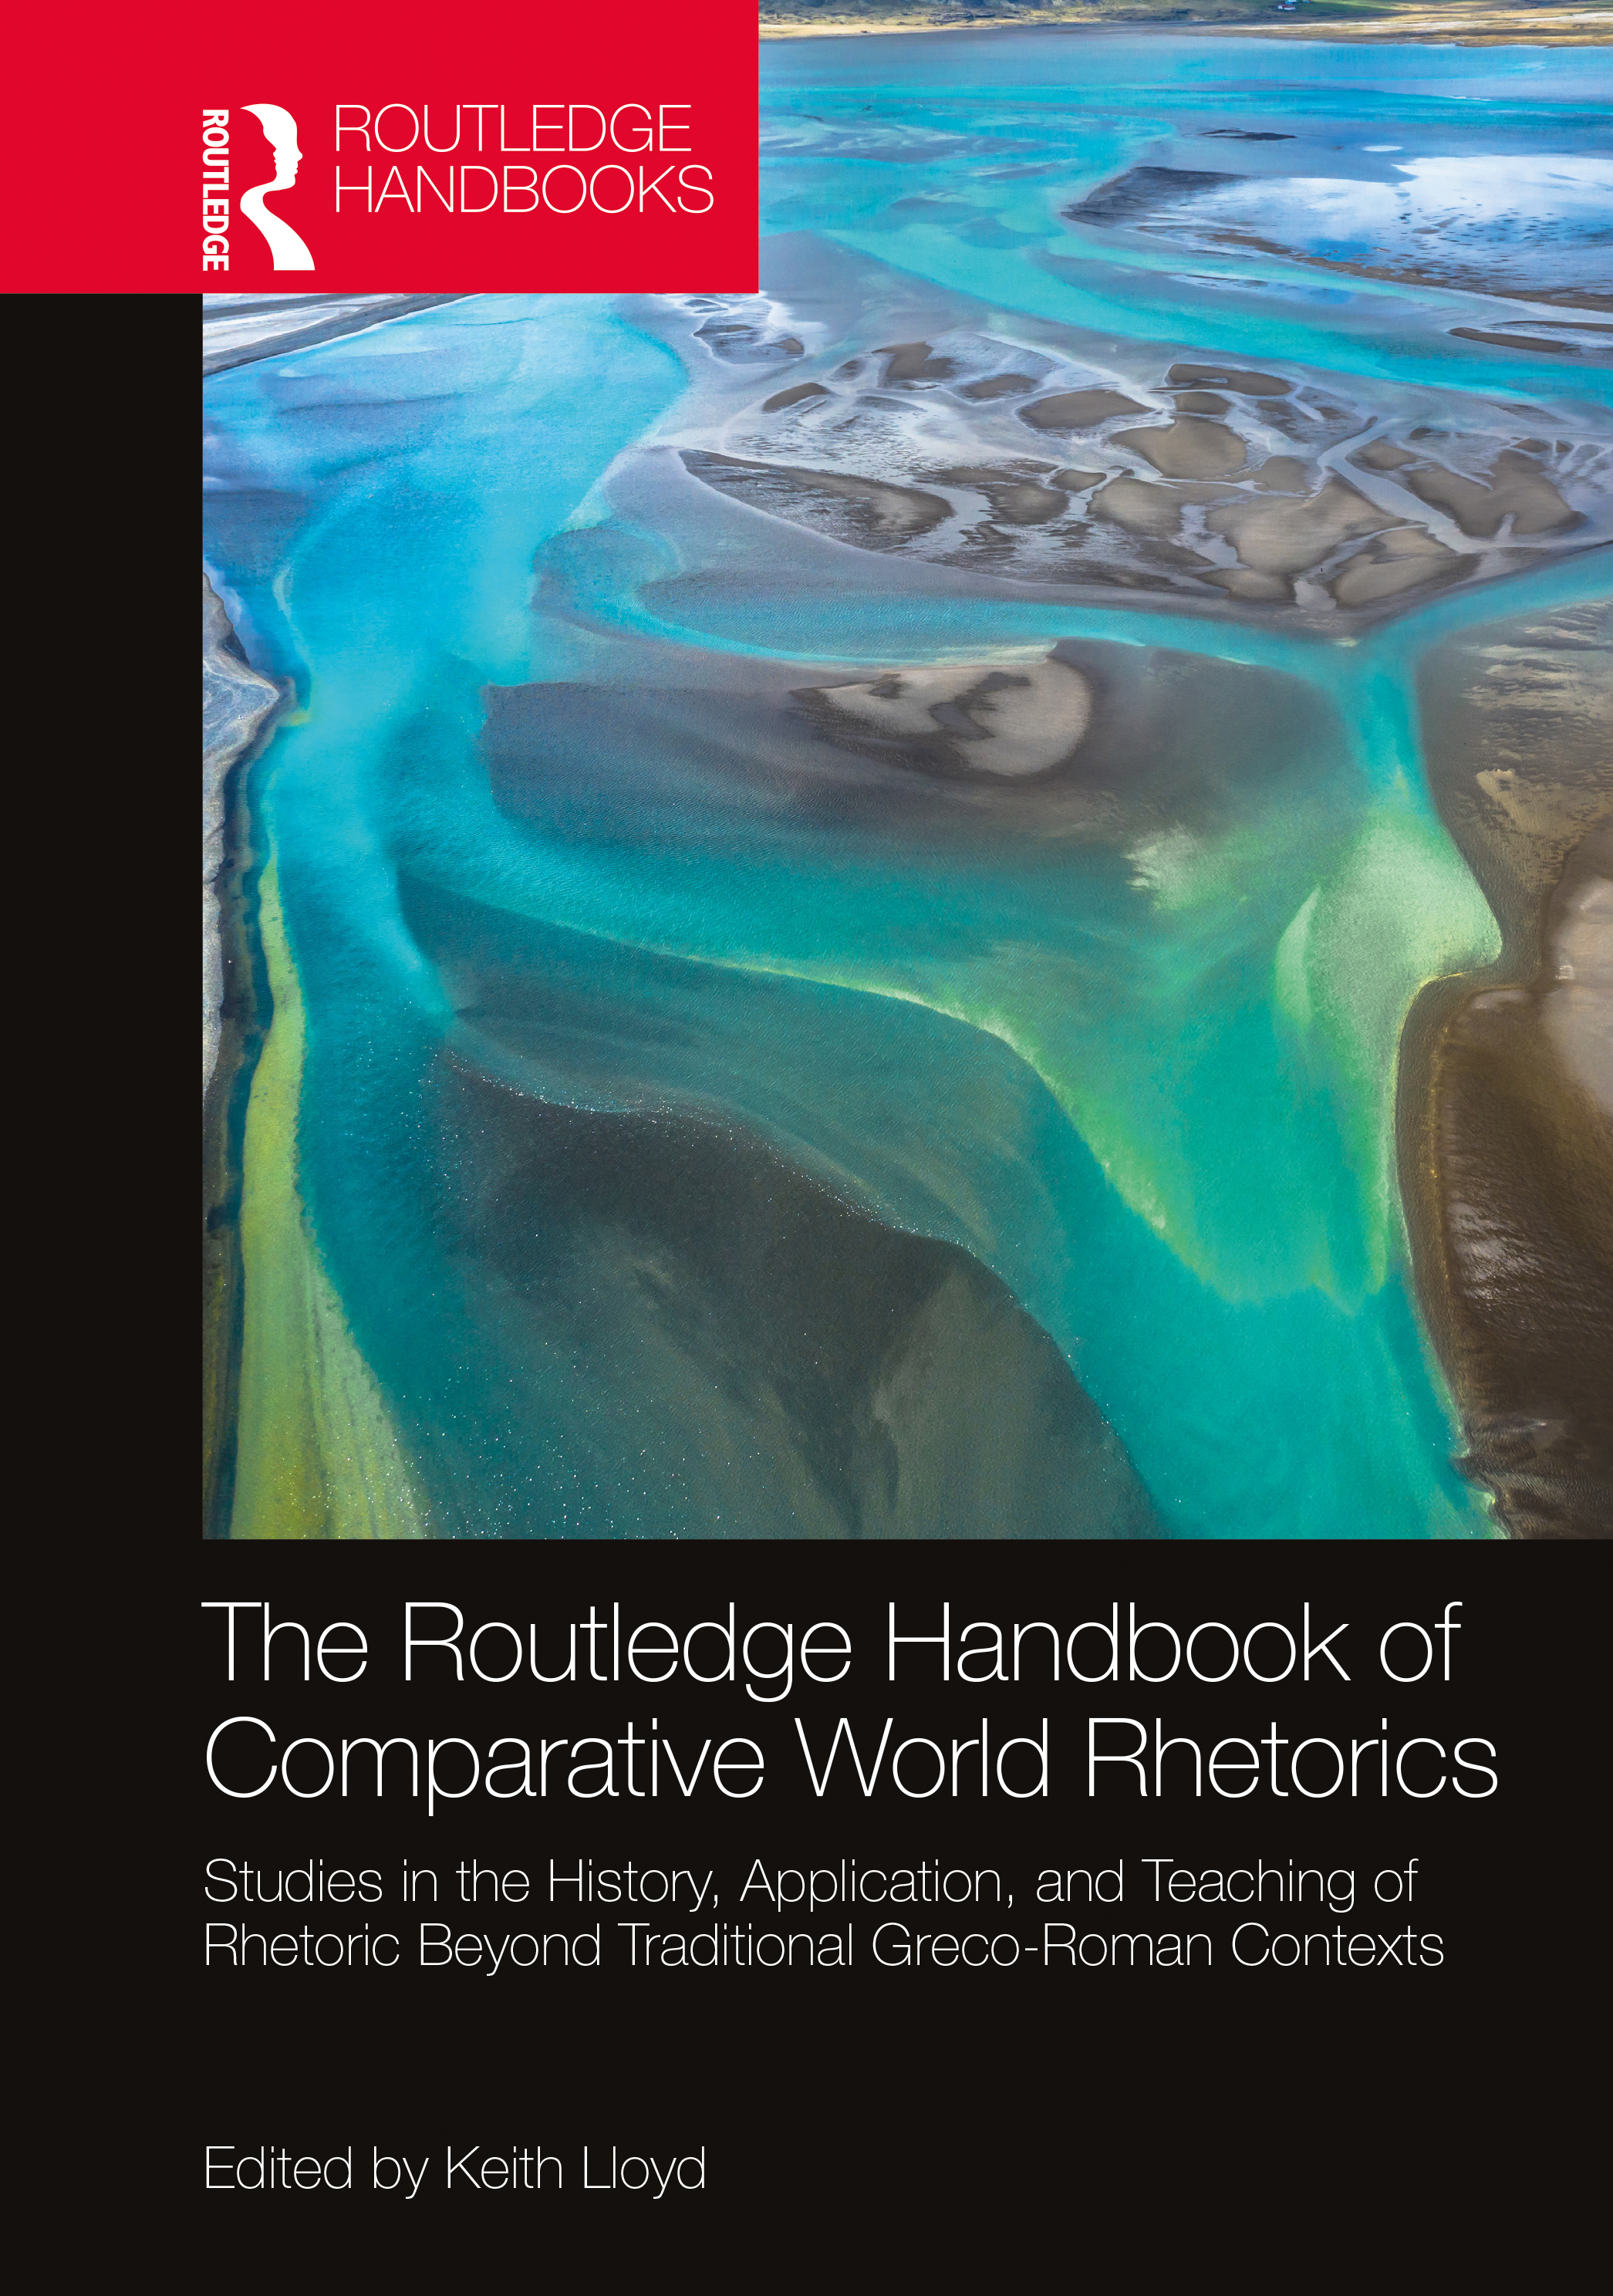 The Routledge Handbook of Comparative World Rhetorics: Studies in the History, Application, and Teaching of Rhetoric Beyond Traditional Greco-Roman Contexts book cover